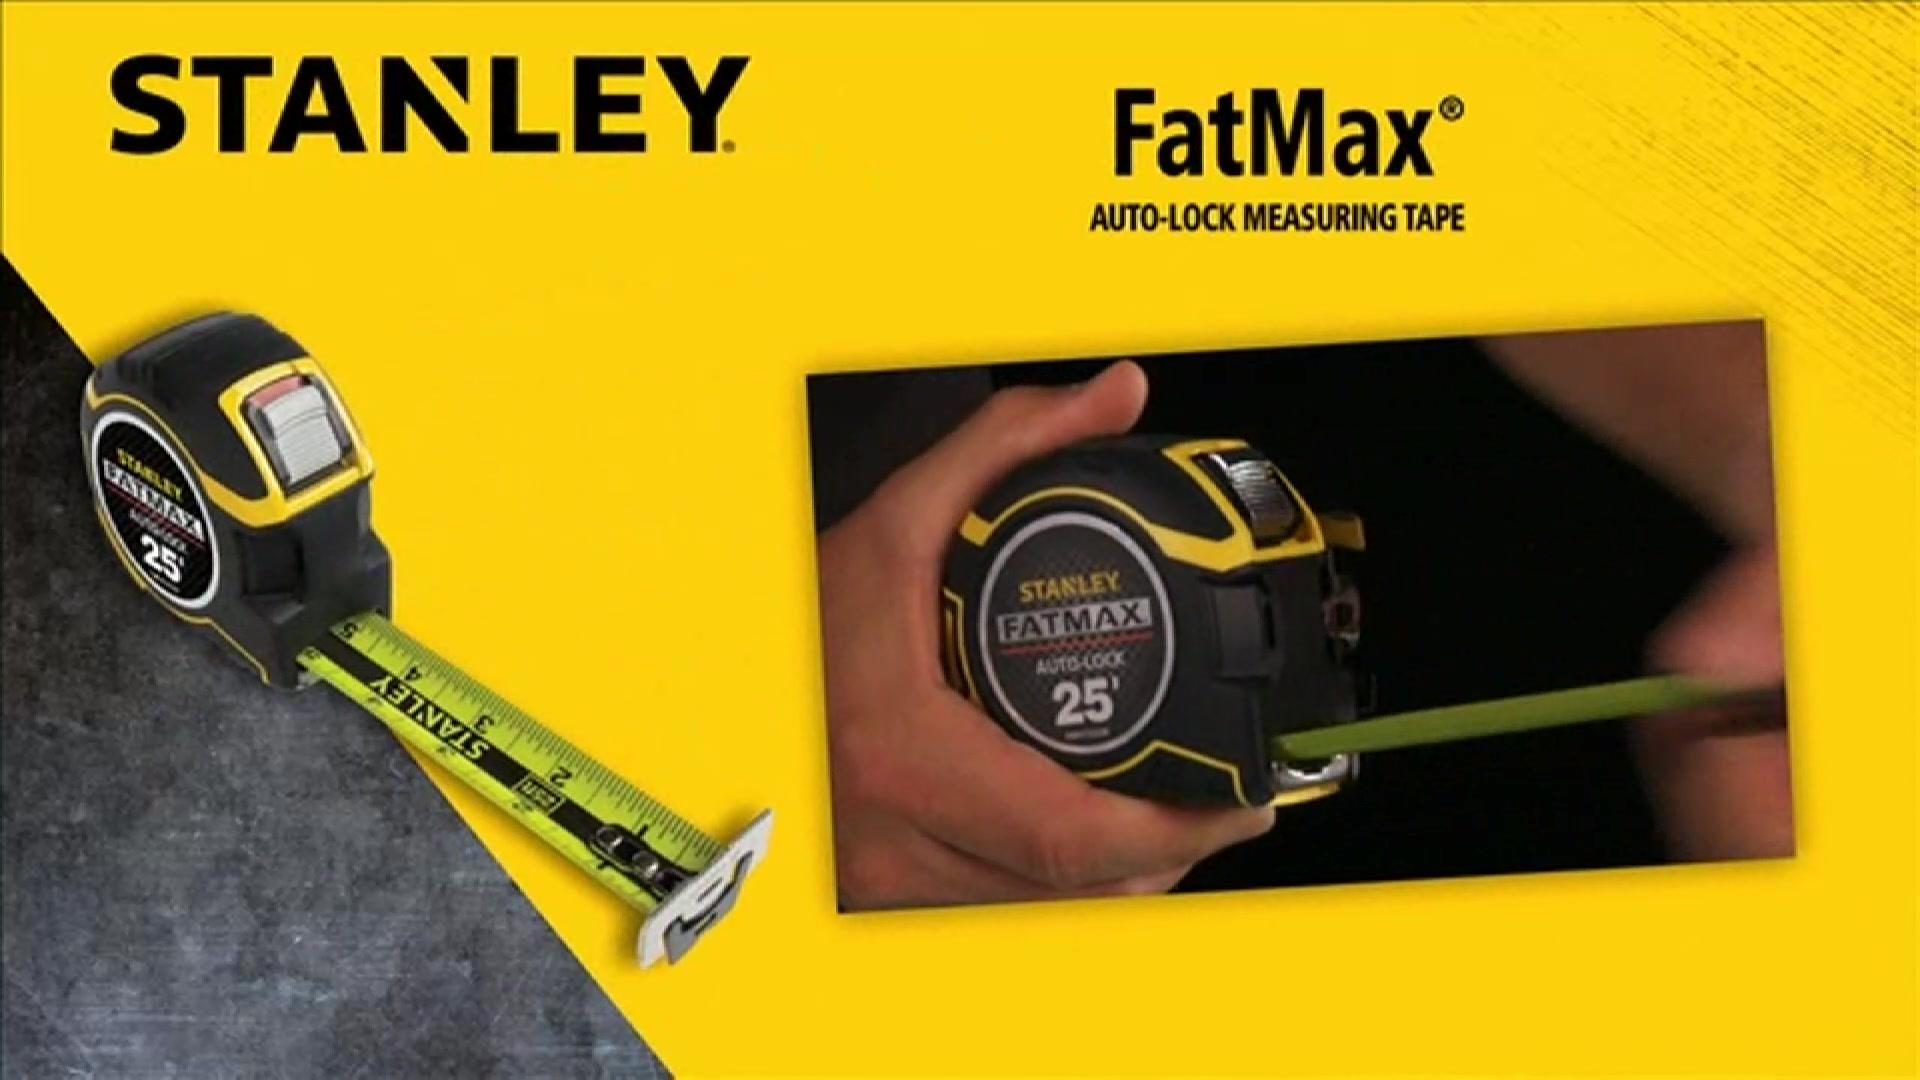 FATMAX® Auto-Lock Measuring Tape | STANLEY